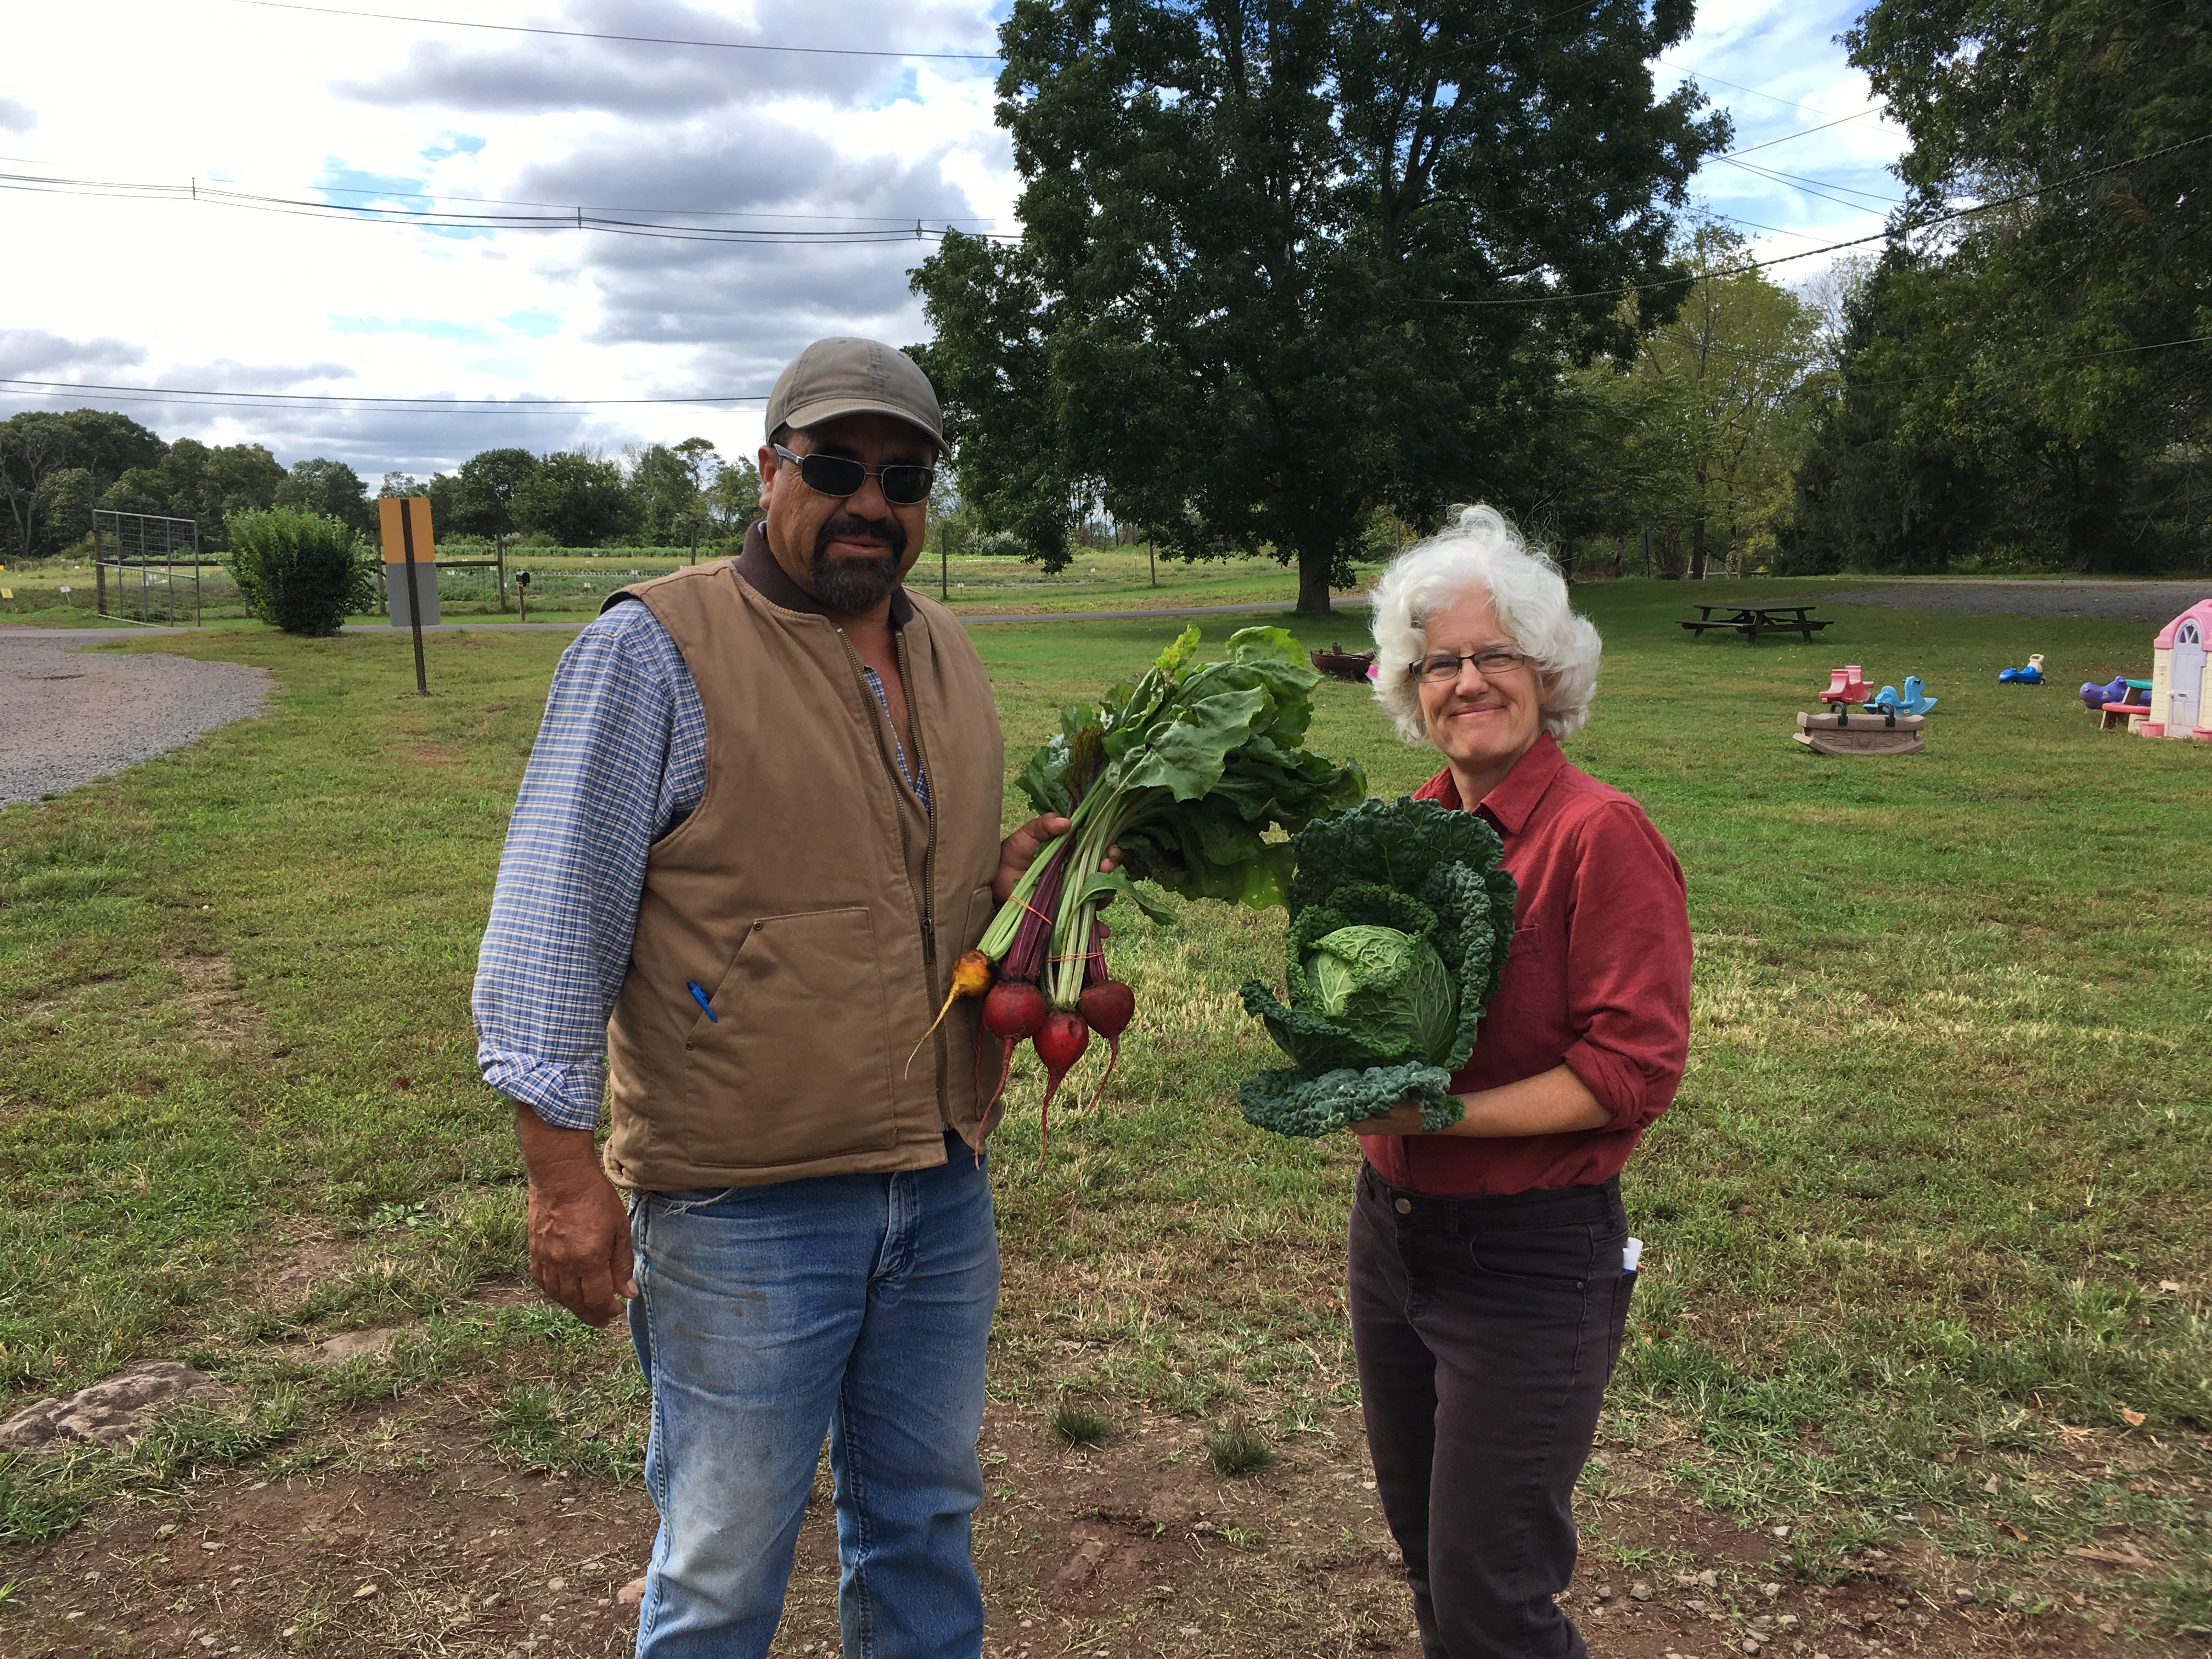 Field manager David Camacho and Farmer Sherry Dudas with fall produce at Honey Brook Organic Farm.